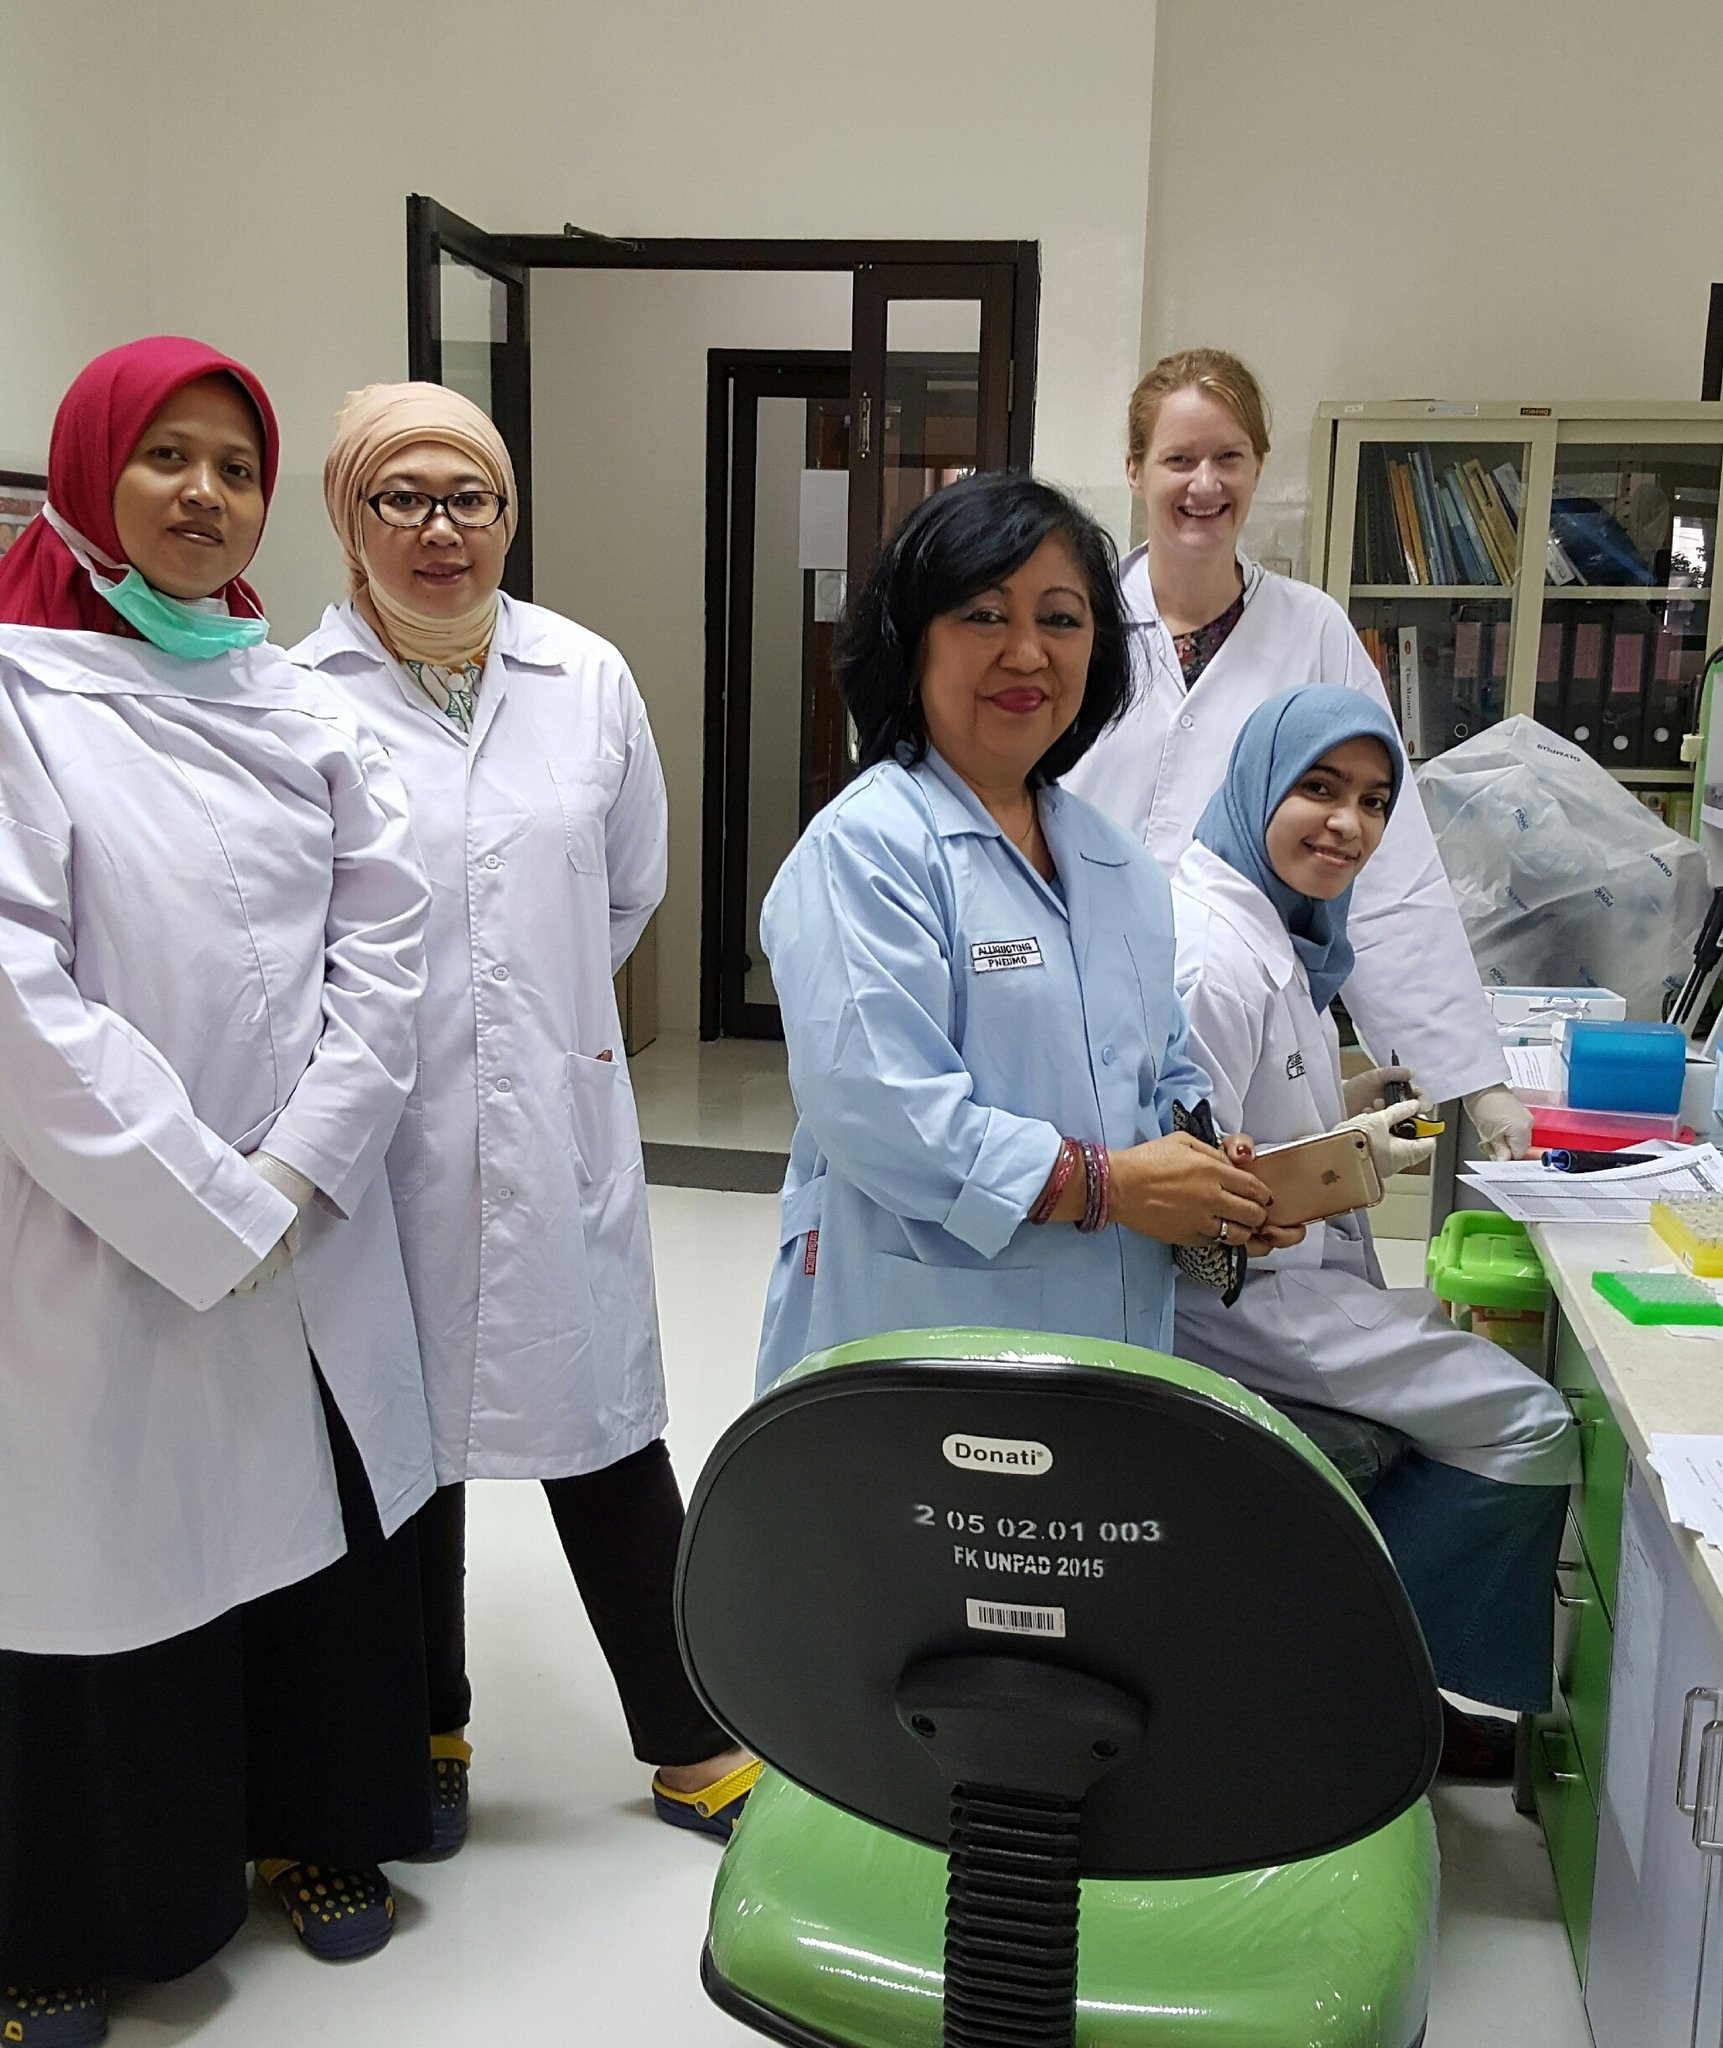 I'm an #actuallivingscientist with my microbiology colleagues in Indonesia and we all #DressLikeAWoman when we study bacterial diseases https://t.co/jVcbWrBByh